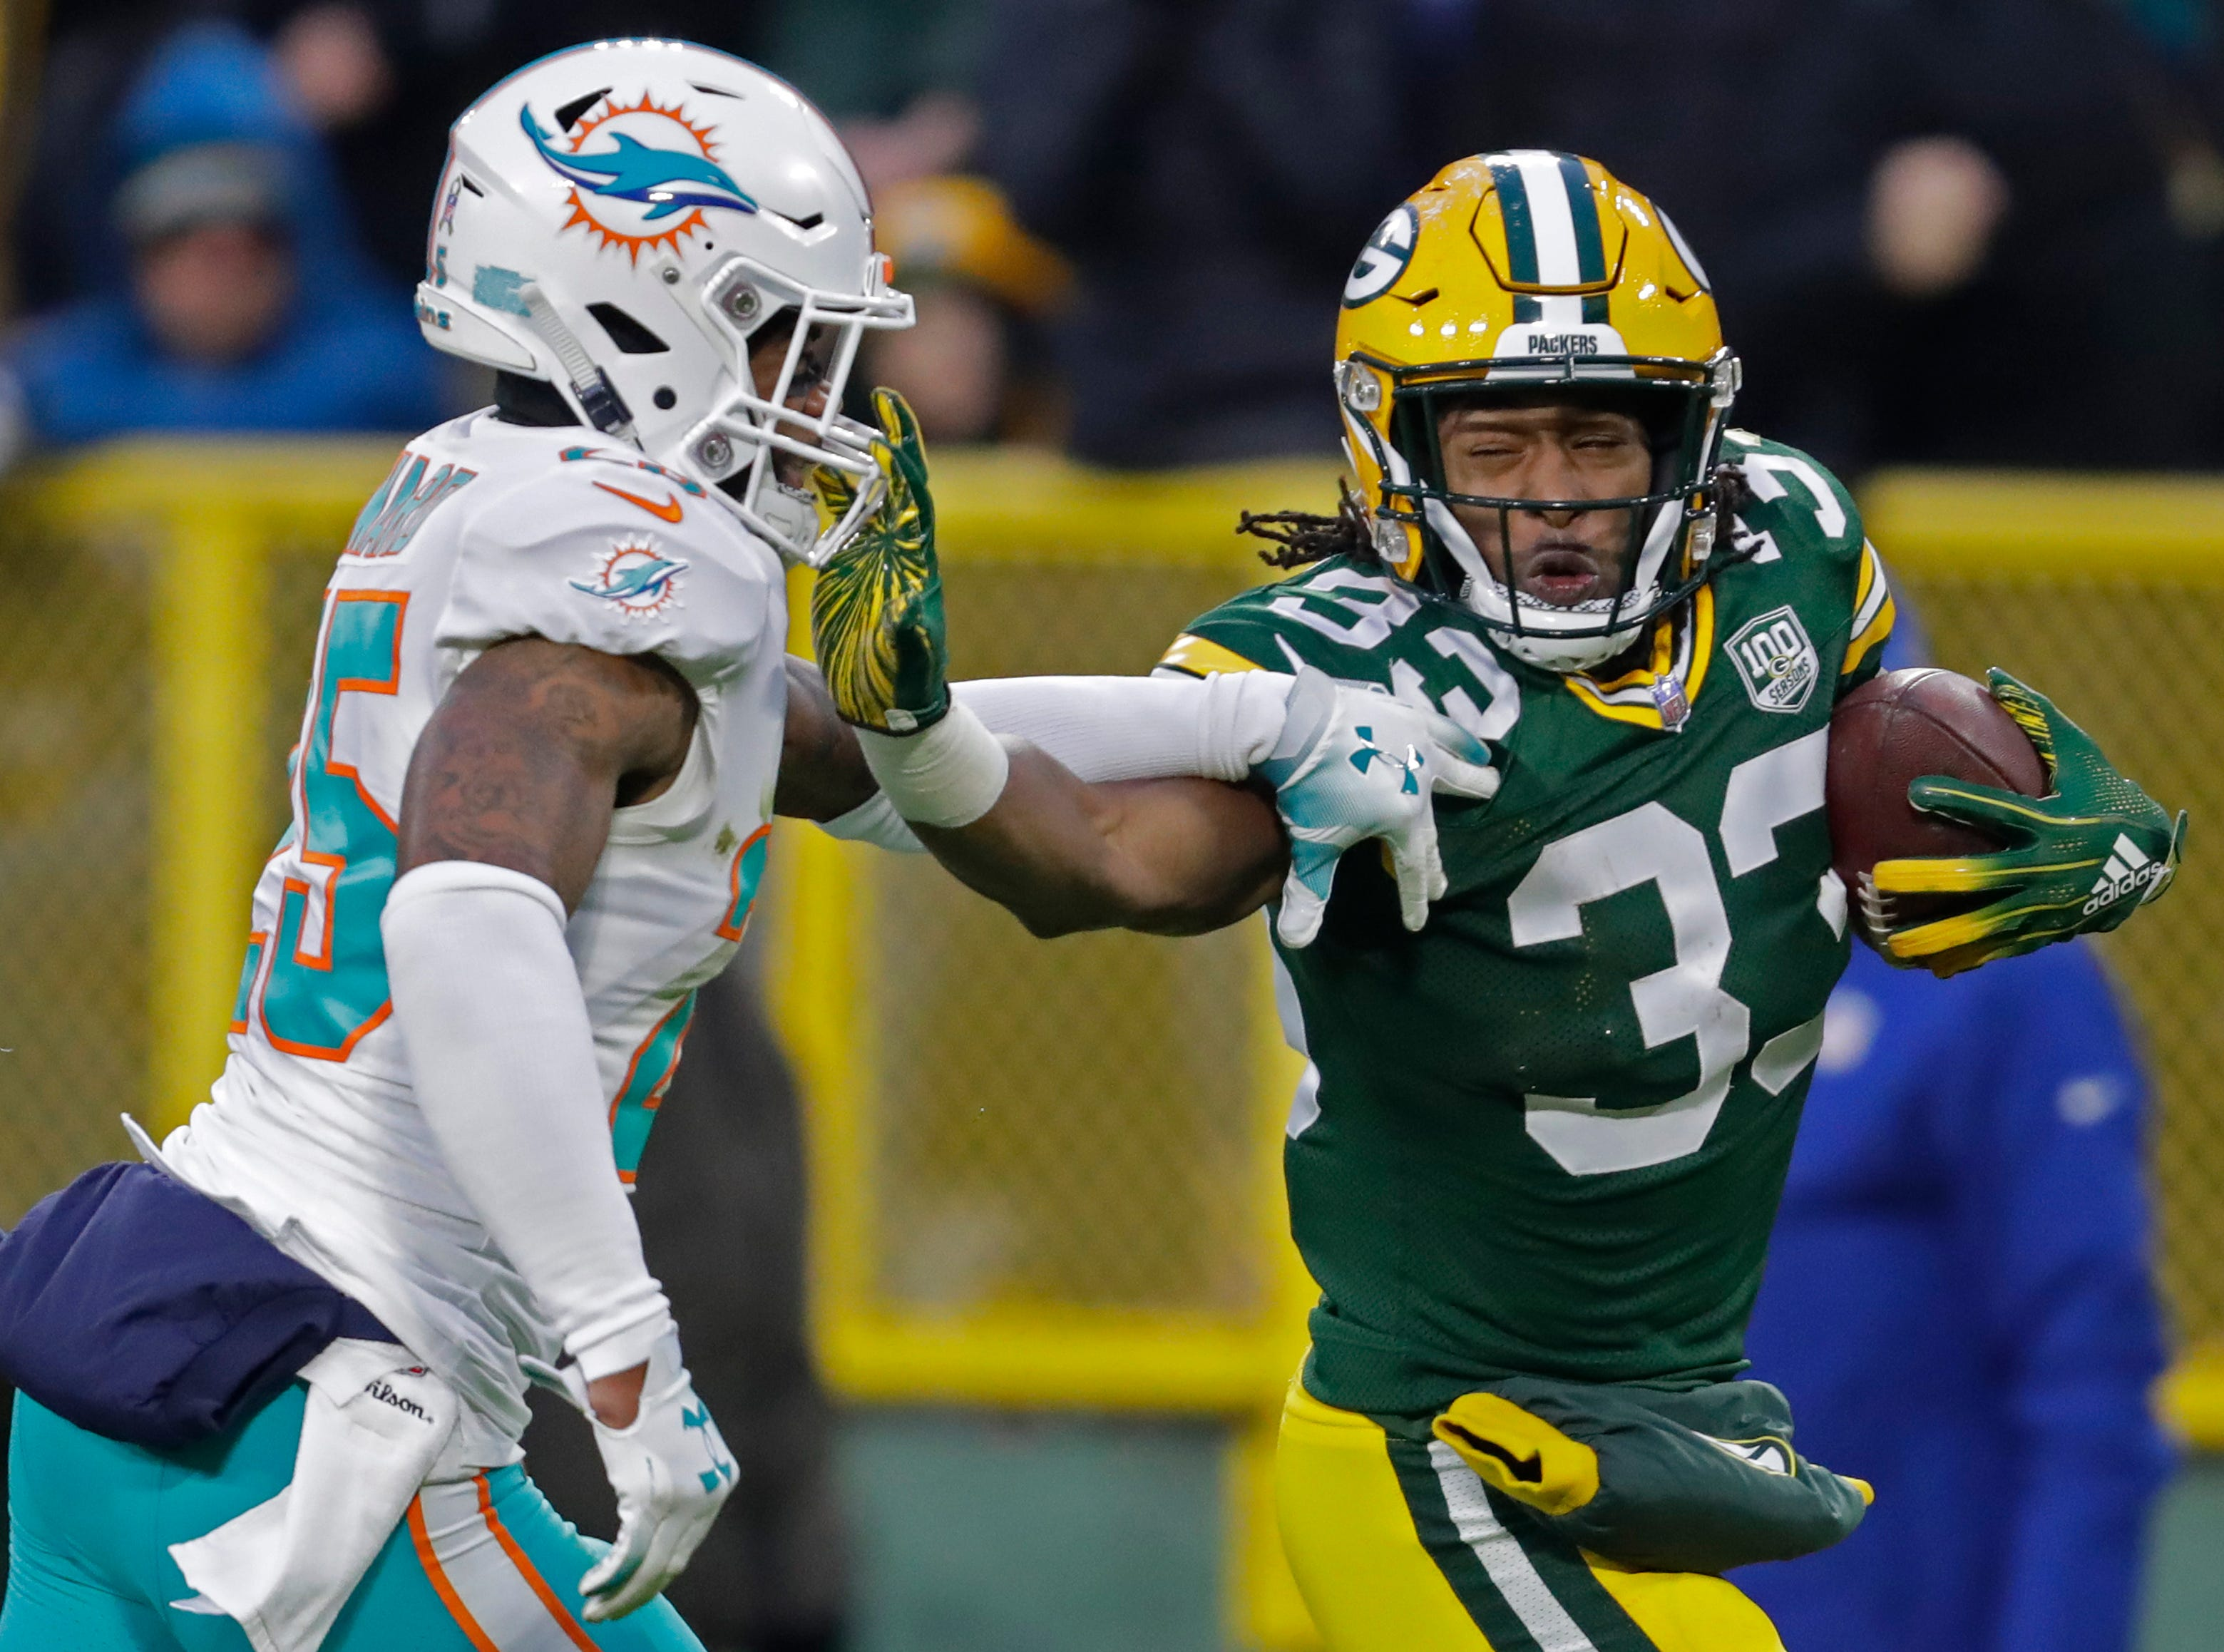 Green Bay Packers running back Aaron Jones (33) stiff arms Miami Dolphins cornerback Xavien Howard (25) on a 67-yard run in the first quarter Sunday, November 11, 2018, Lambeau Field in Green Bay, Wis. 